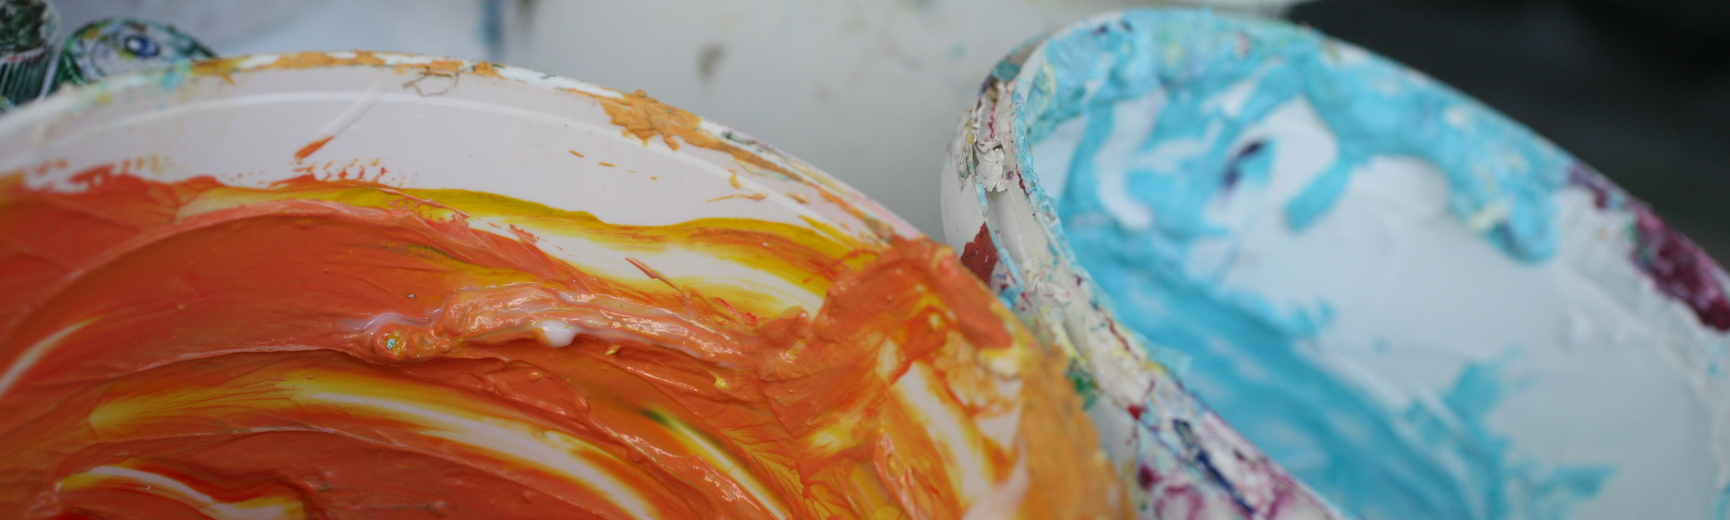 Art Therapy CPD page